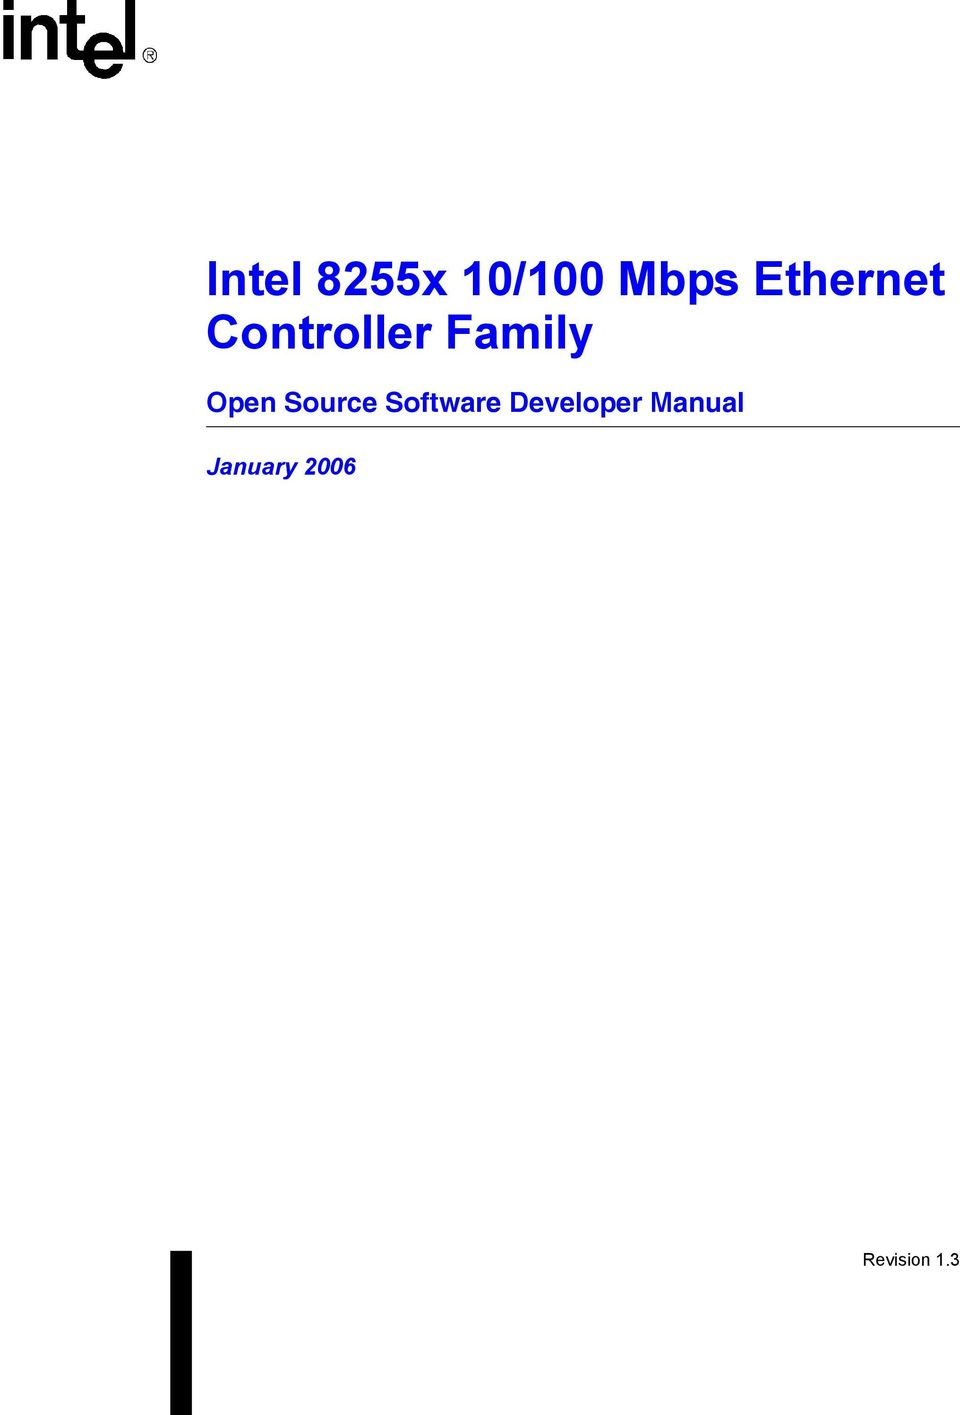 INTEL 8255X FAST ETHERNET DOWNLOAD DRIVERS